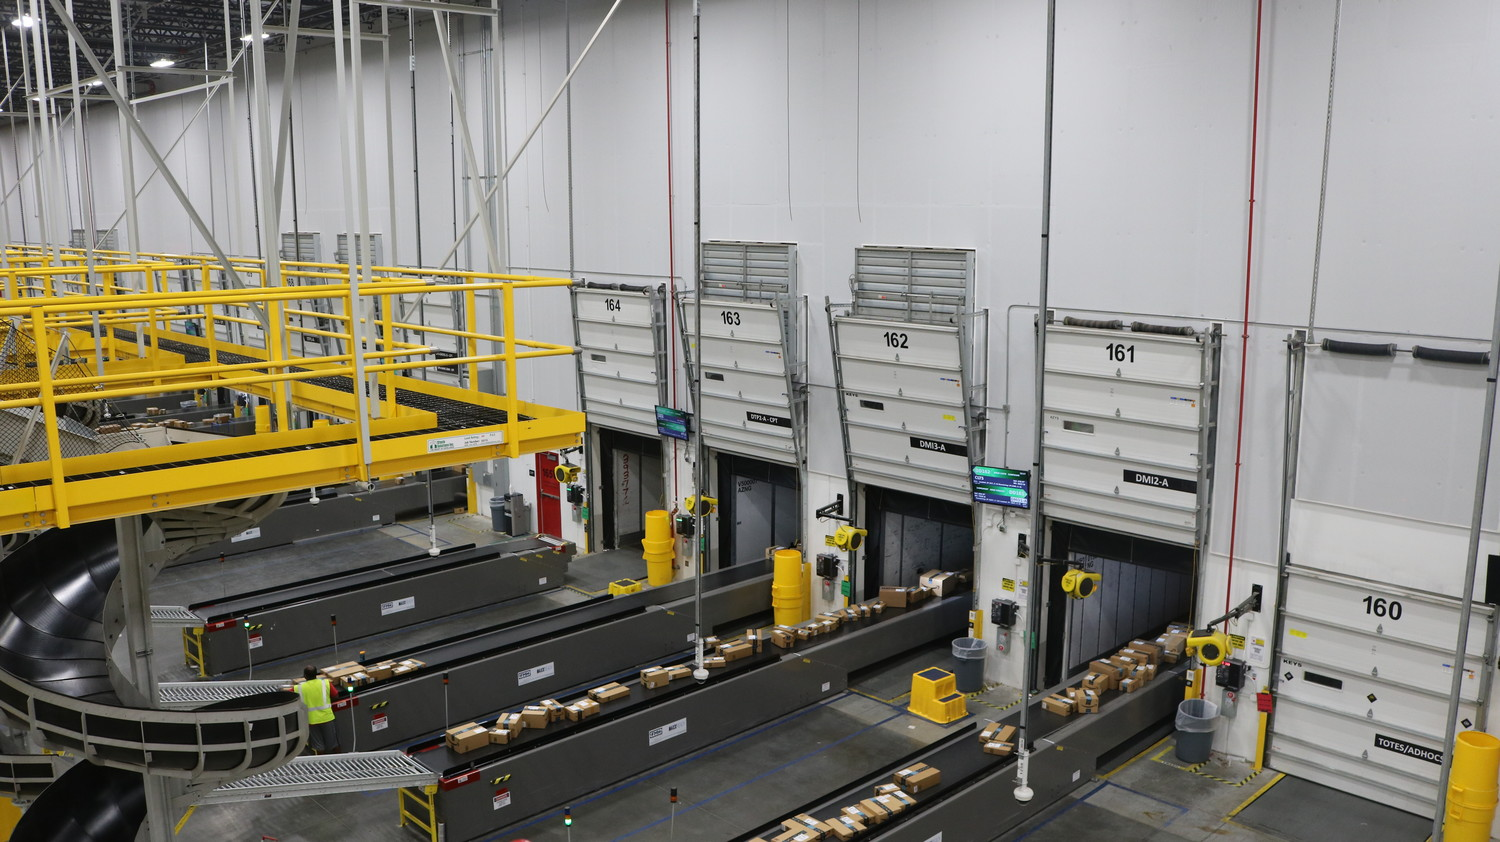 Amazon opened the doors of its new fulfillment center on Jacksonville's Northside to elected officials and community leaders on April 6 as part of a special grand opening event. The new facility began operating last year.